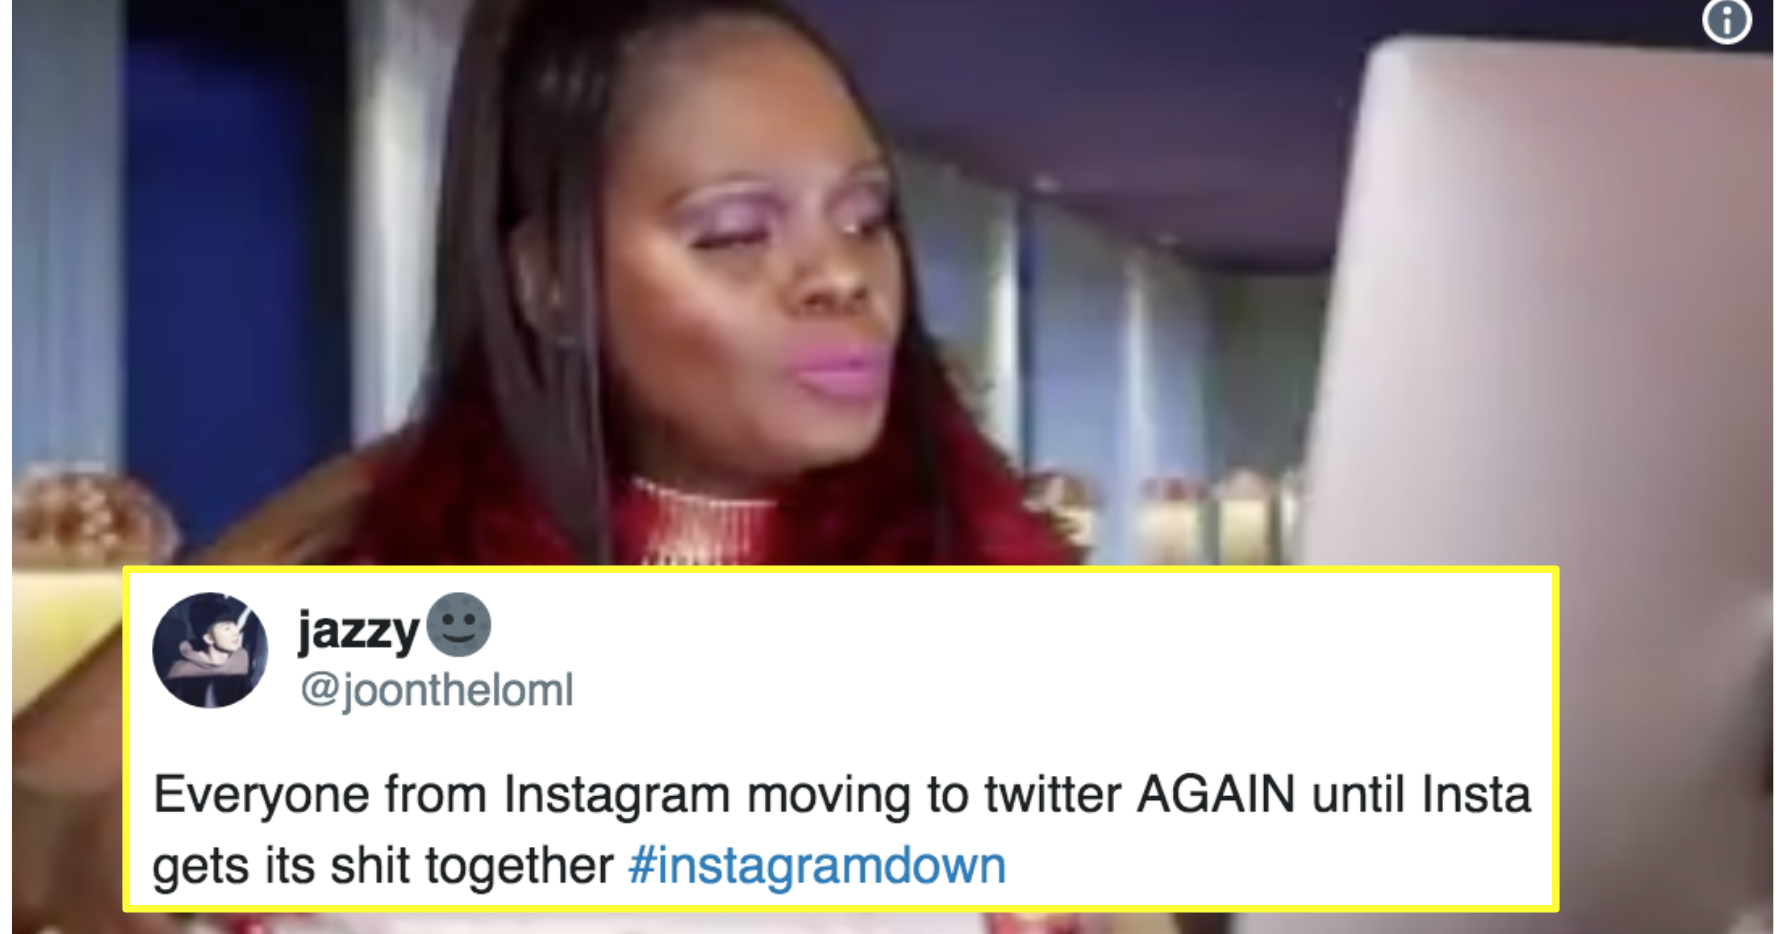 10 Hilarious Tweets About Facebook, Instagram, And WhatsApp Not Working